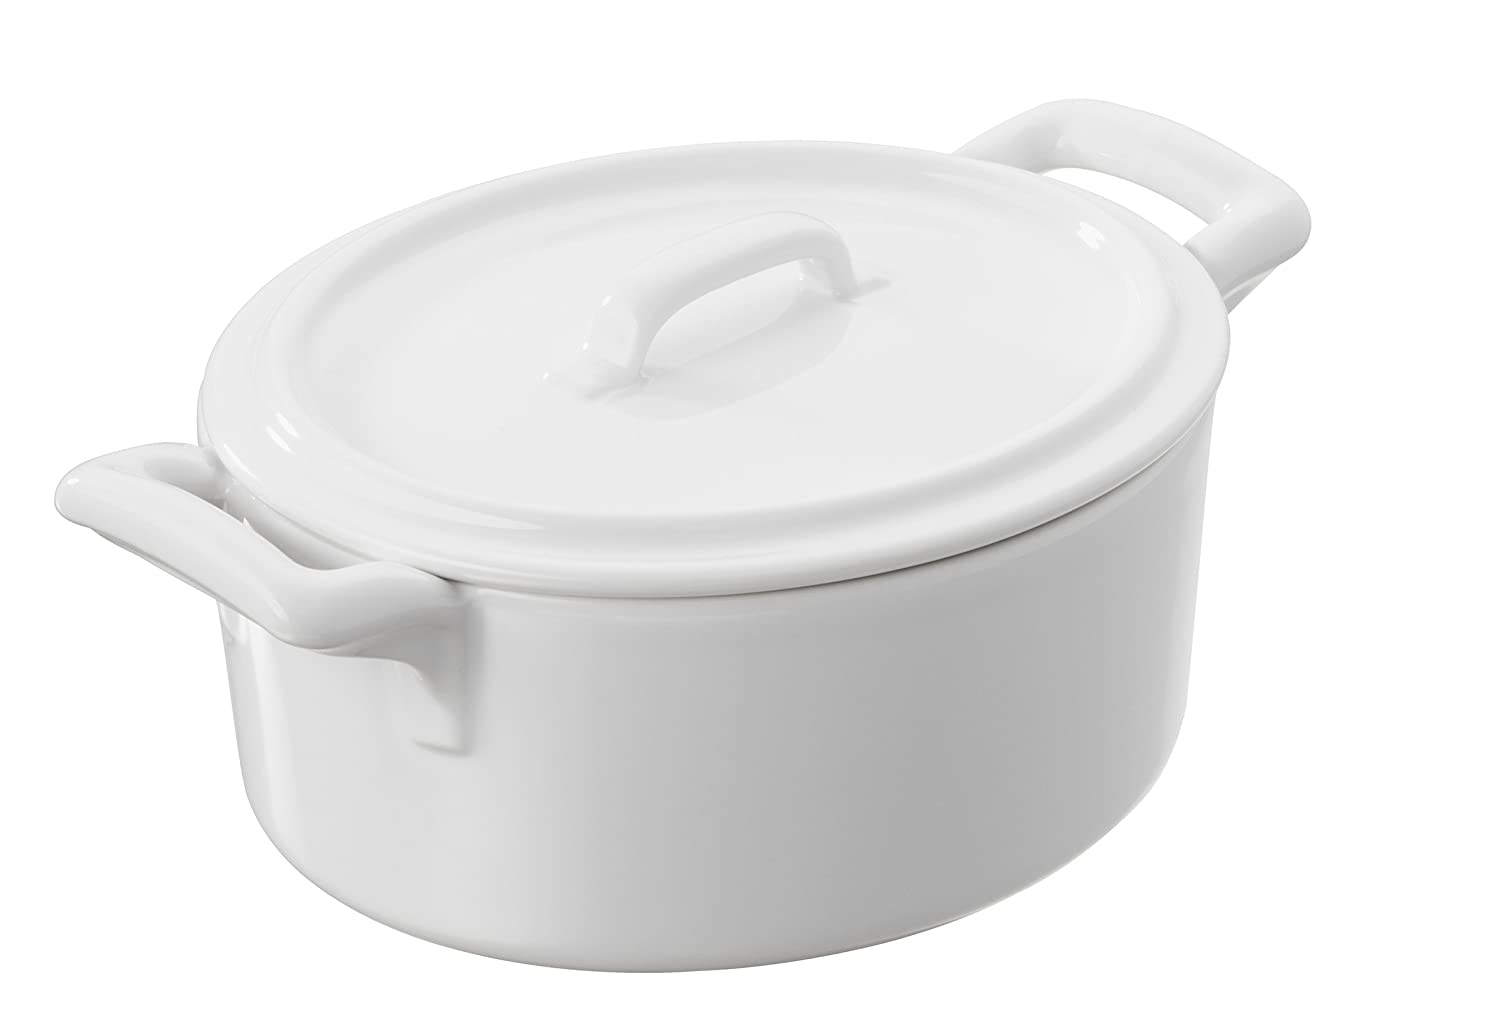 d Dimensions: 135 w x 80 h Revol Belle Cuisine Cocotte with Lid x 122 mm Sold singly.